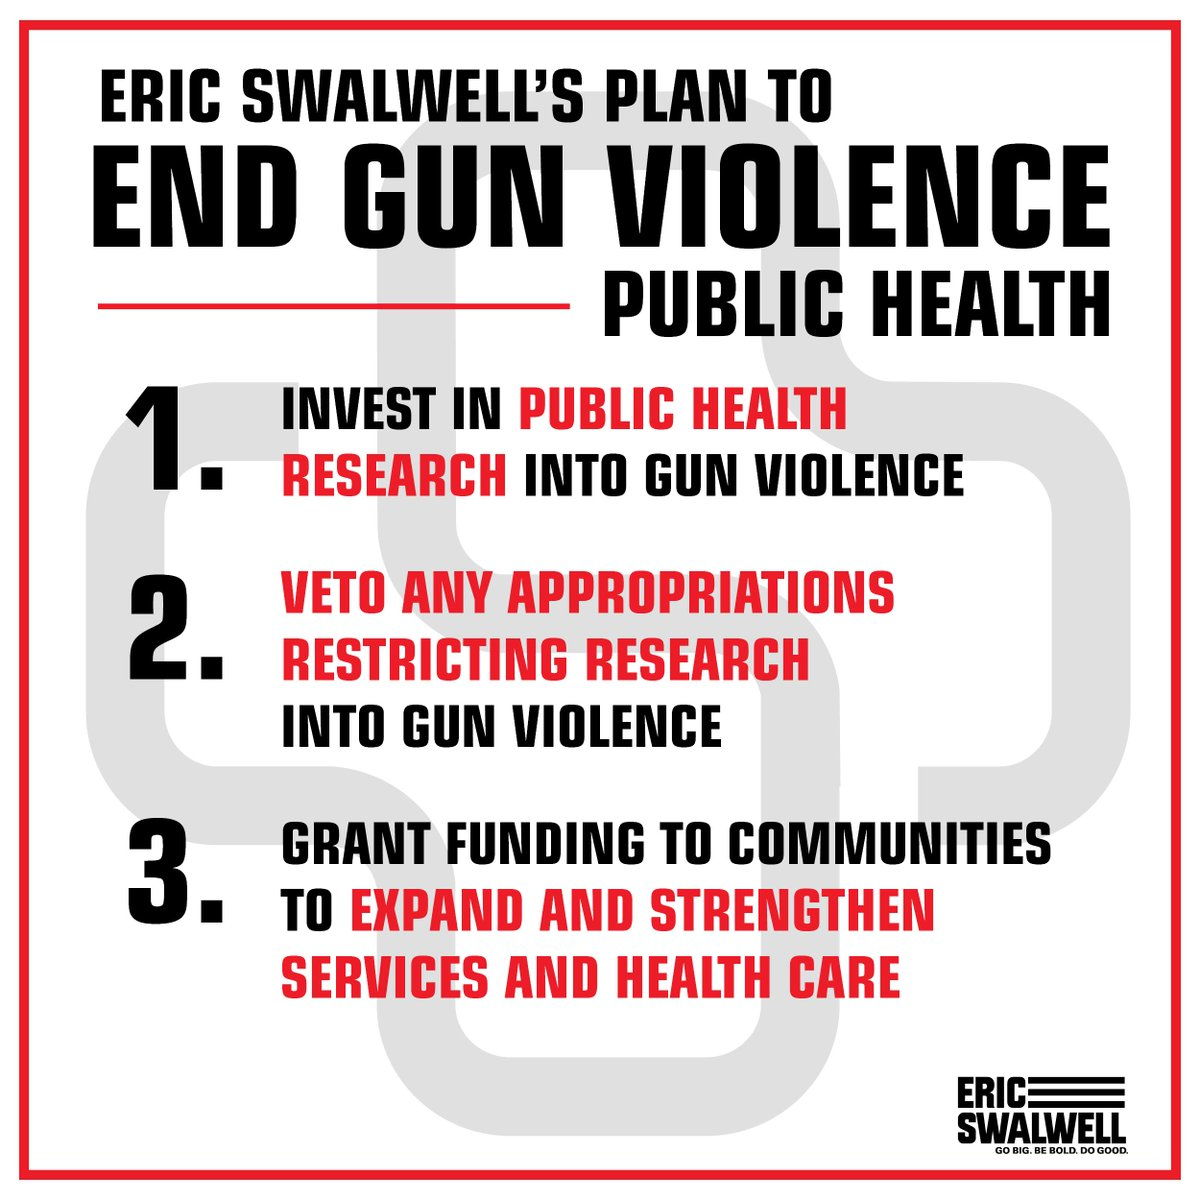 Gun violence is a public health issue. We must invest in public health and research to stop this problem at its roots.  For more on our comprehensive plan to end gun violence, go to http://ericswalwell.com/endgunviolence